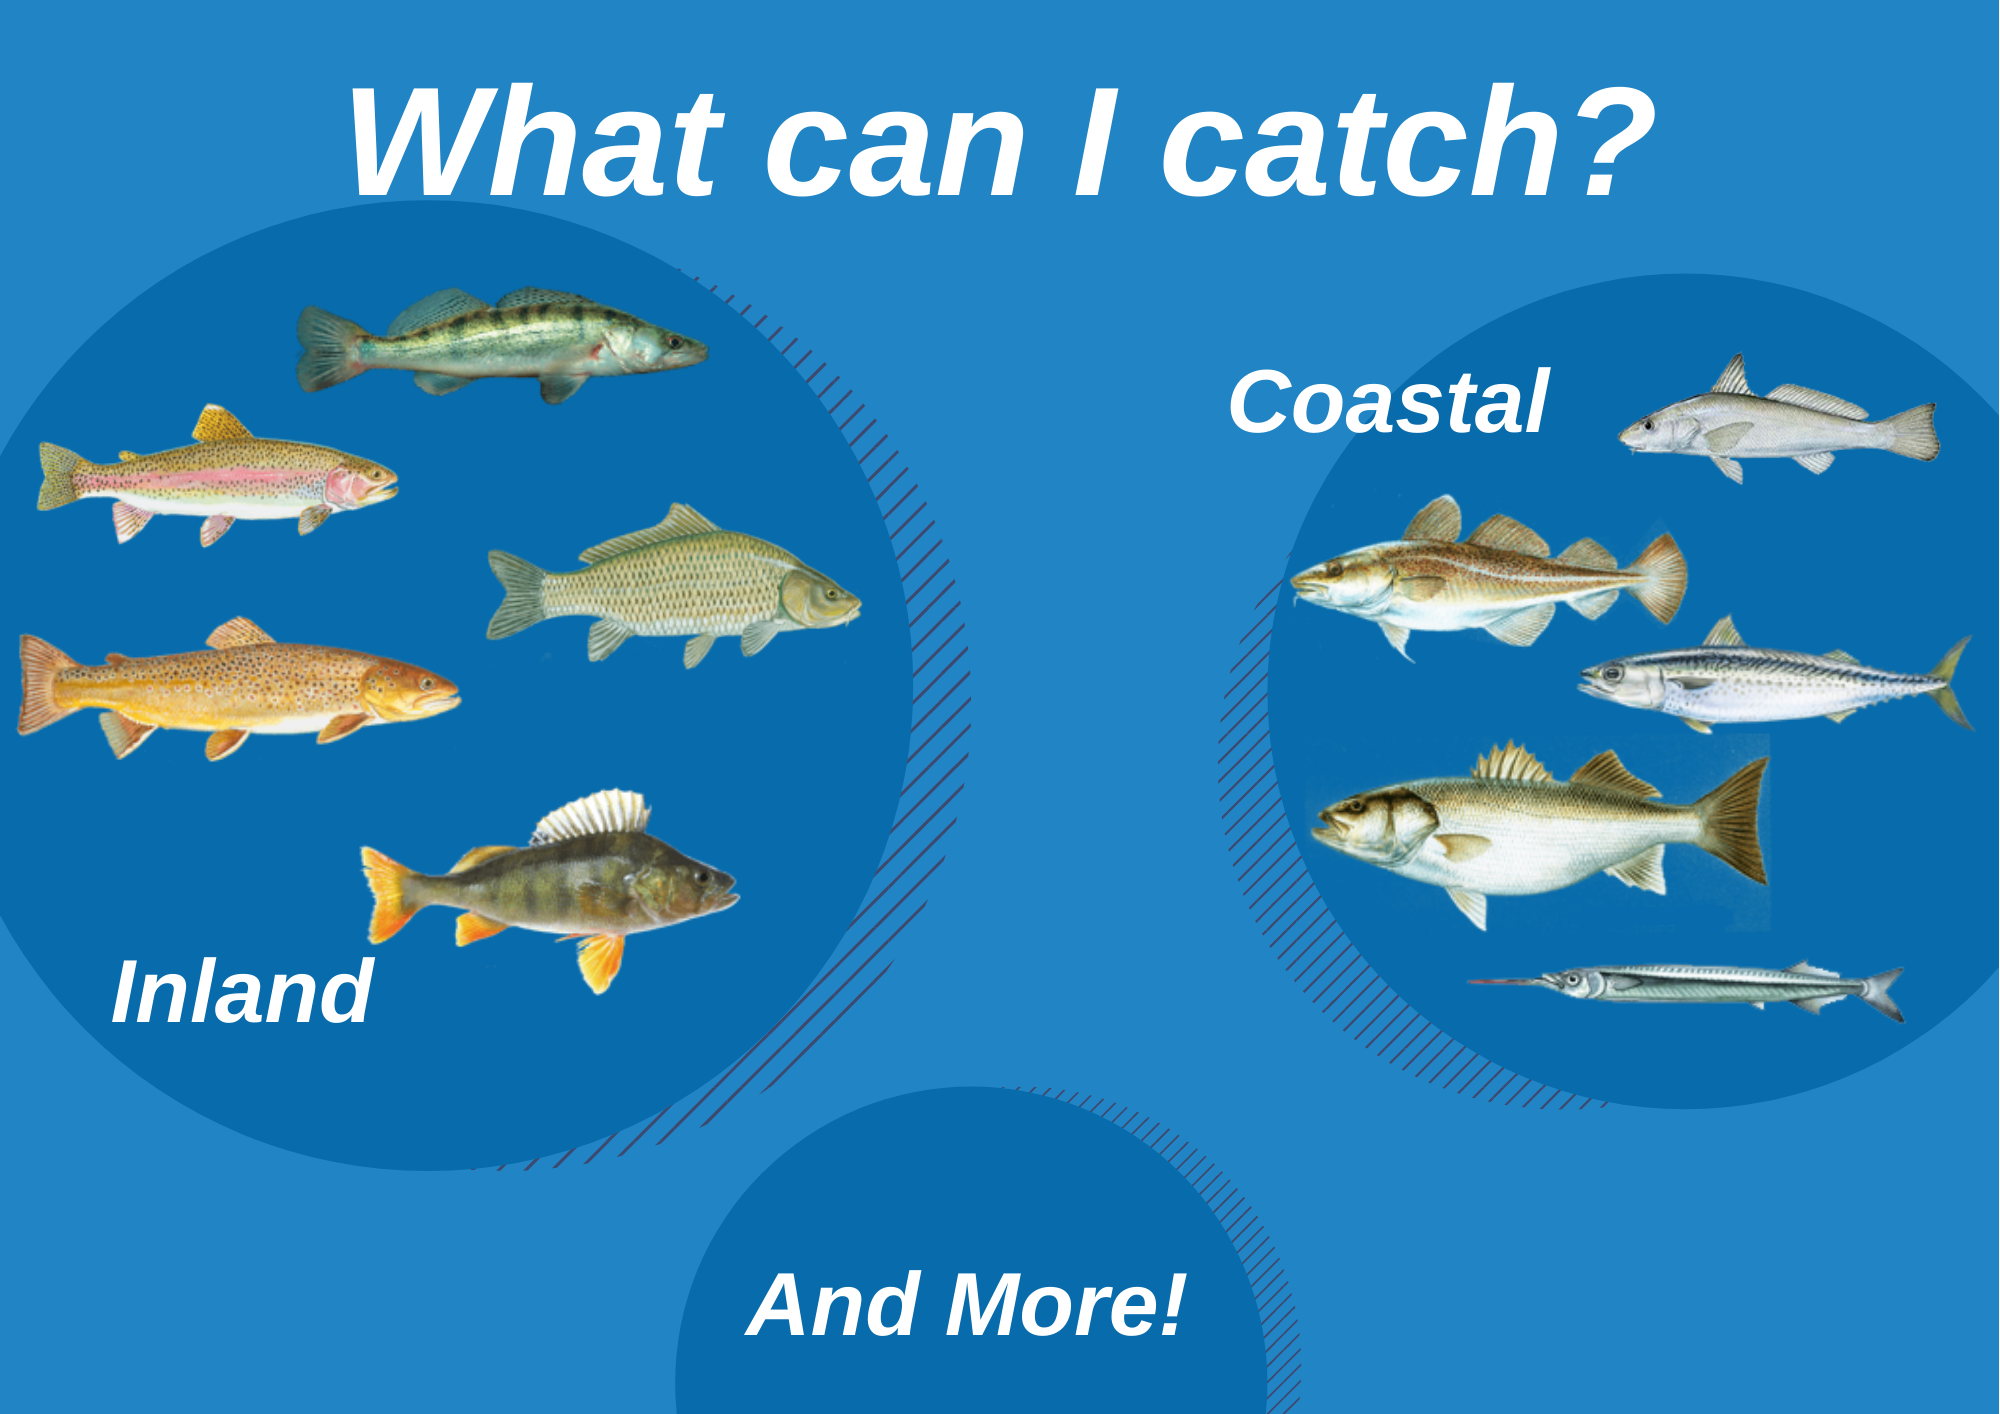 An infographic showing an overview of the top fish species to target in the Netherlands